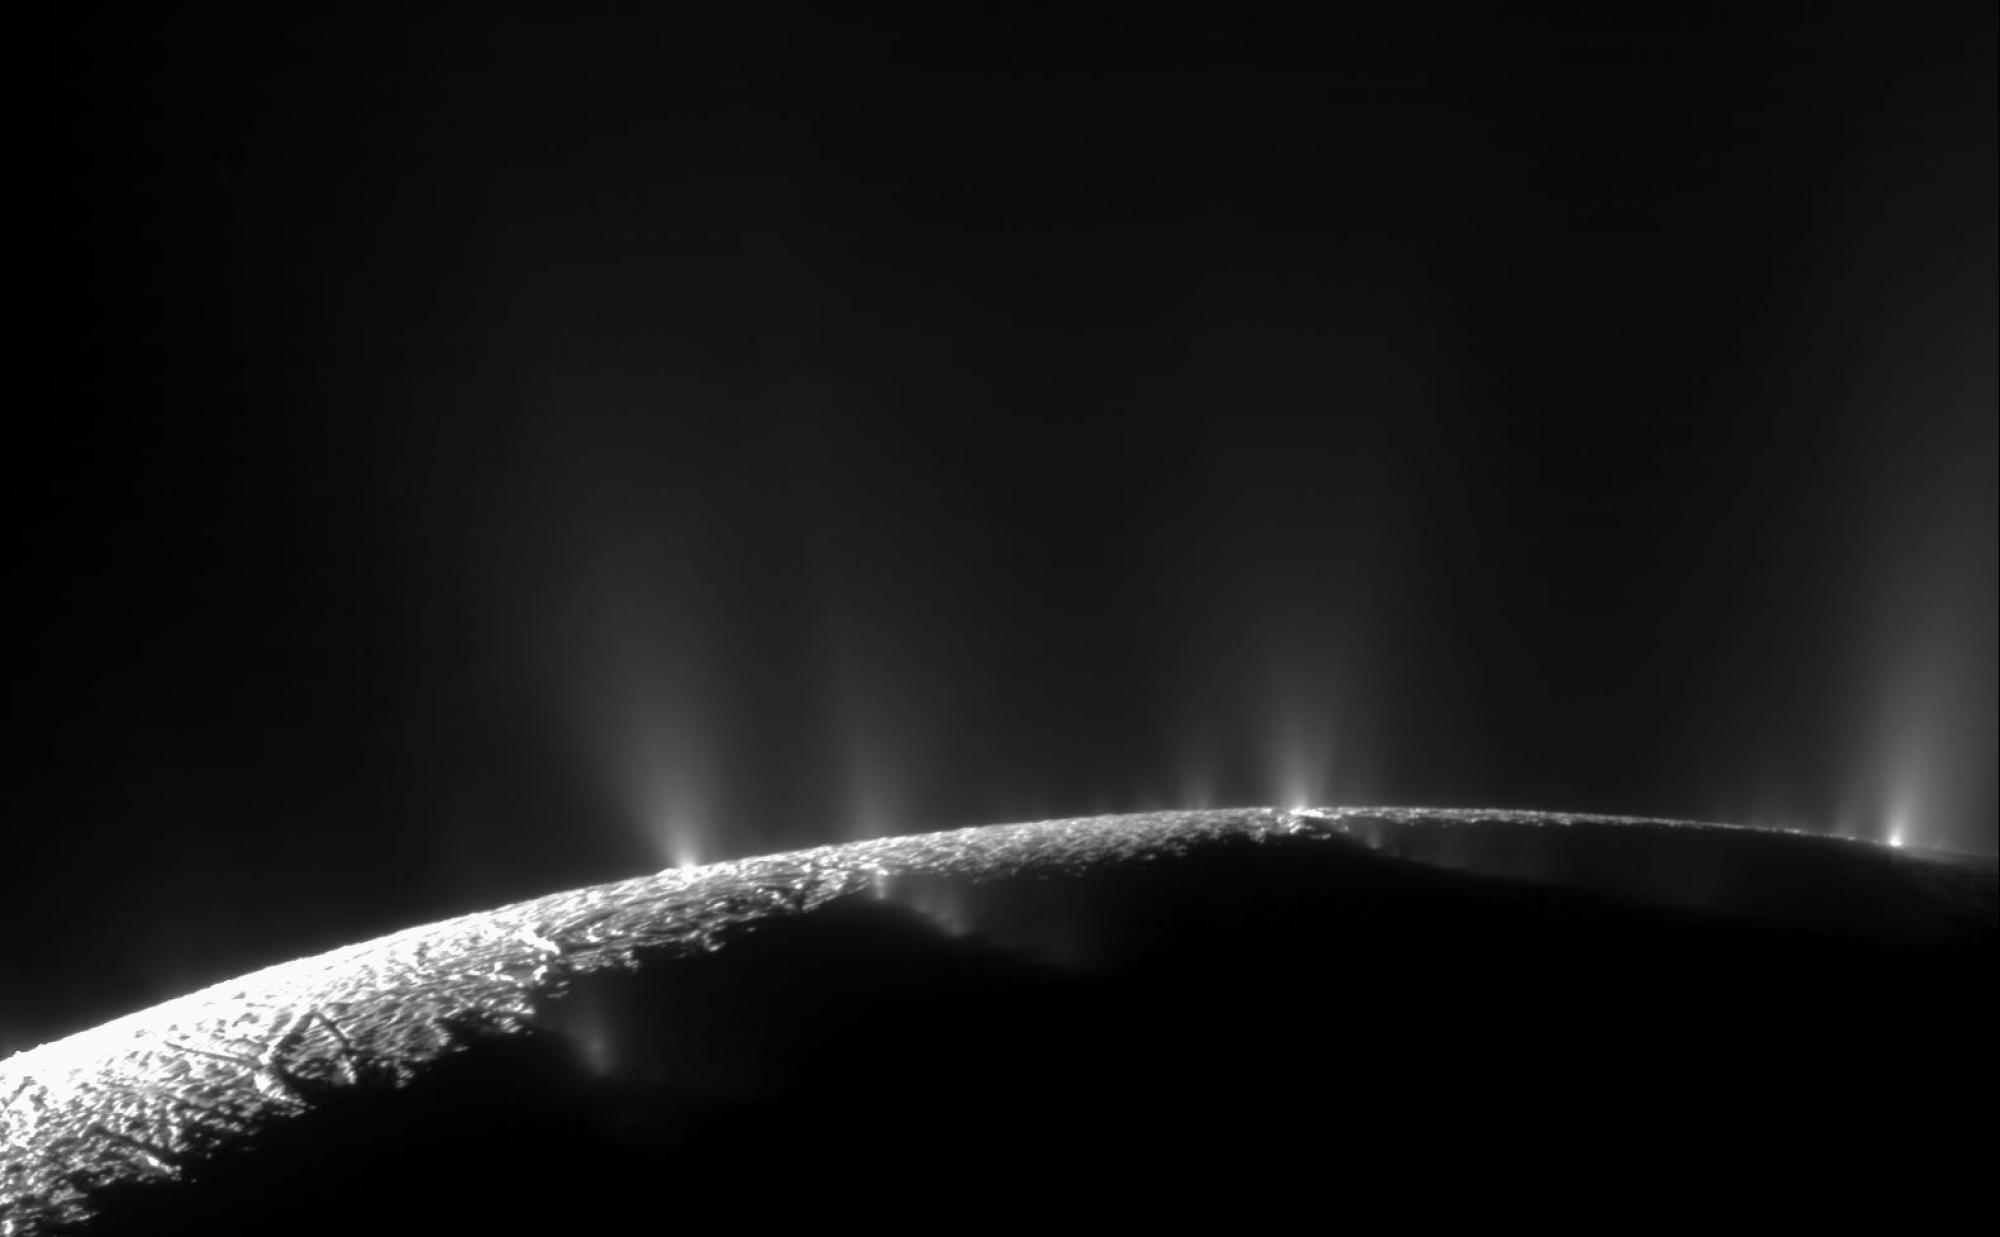 NASA Cassini spacecraft captured dramatic plumes, both large and small, spraying water ice out from many locations along the famed tiger stripes near the south pole of Saturn moon Enceladus.